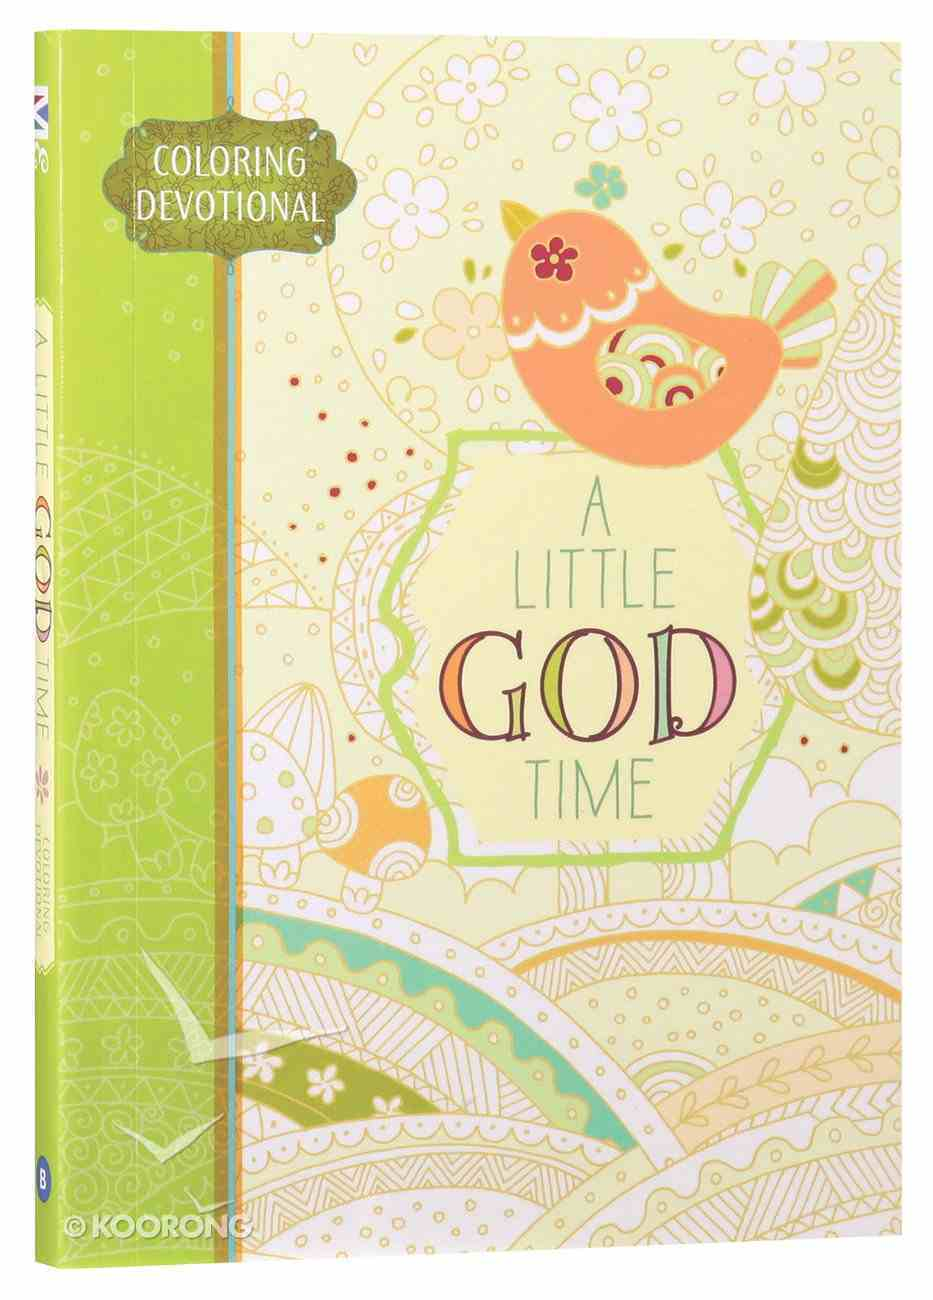 A Little God Time: Coloring Devotional (Majestic Expressions) Paperback